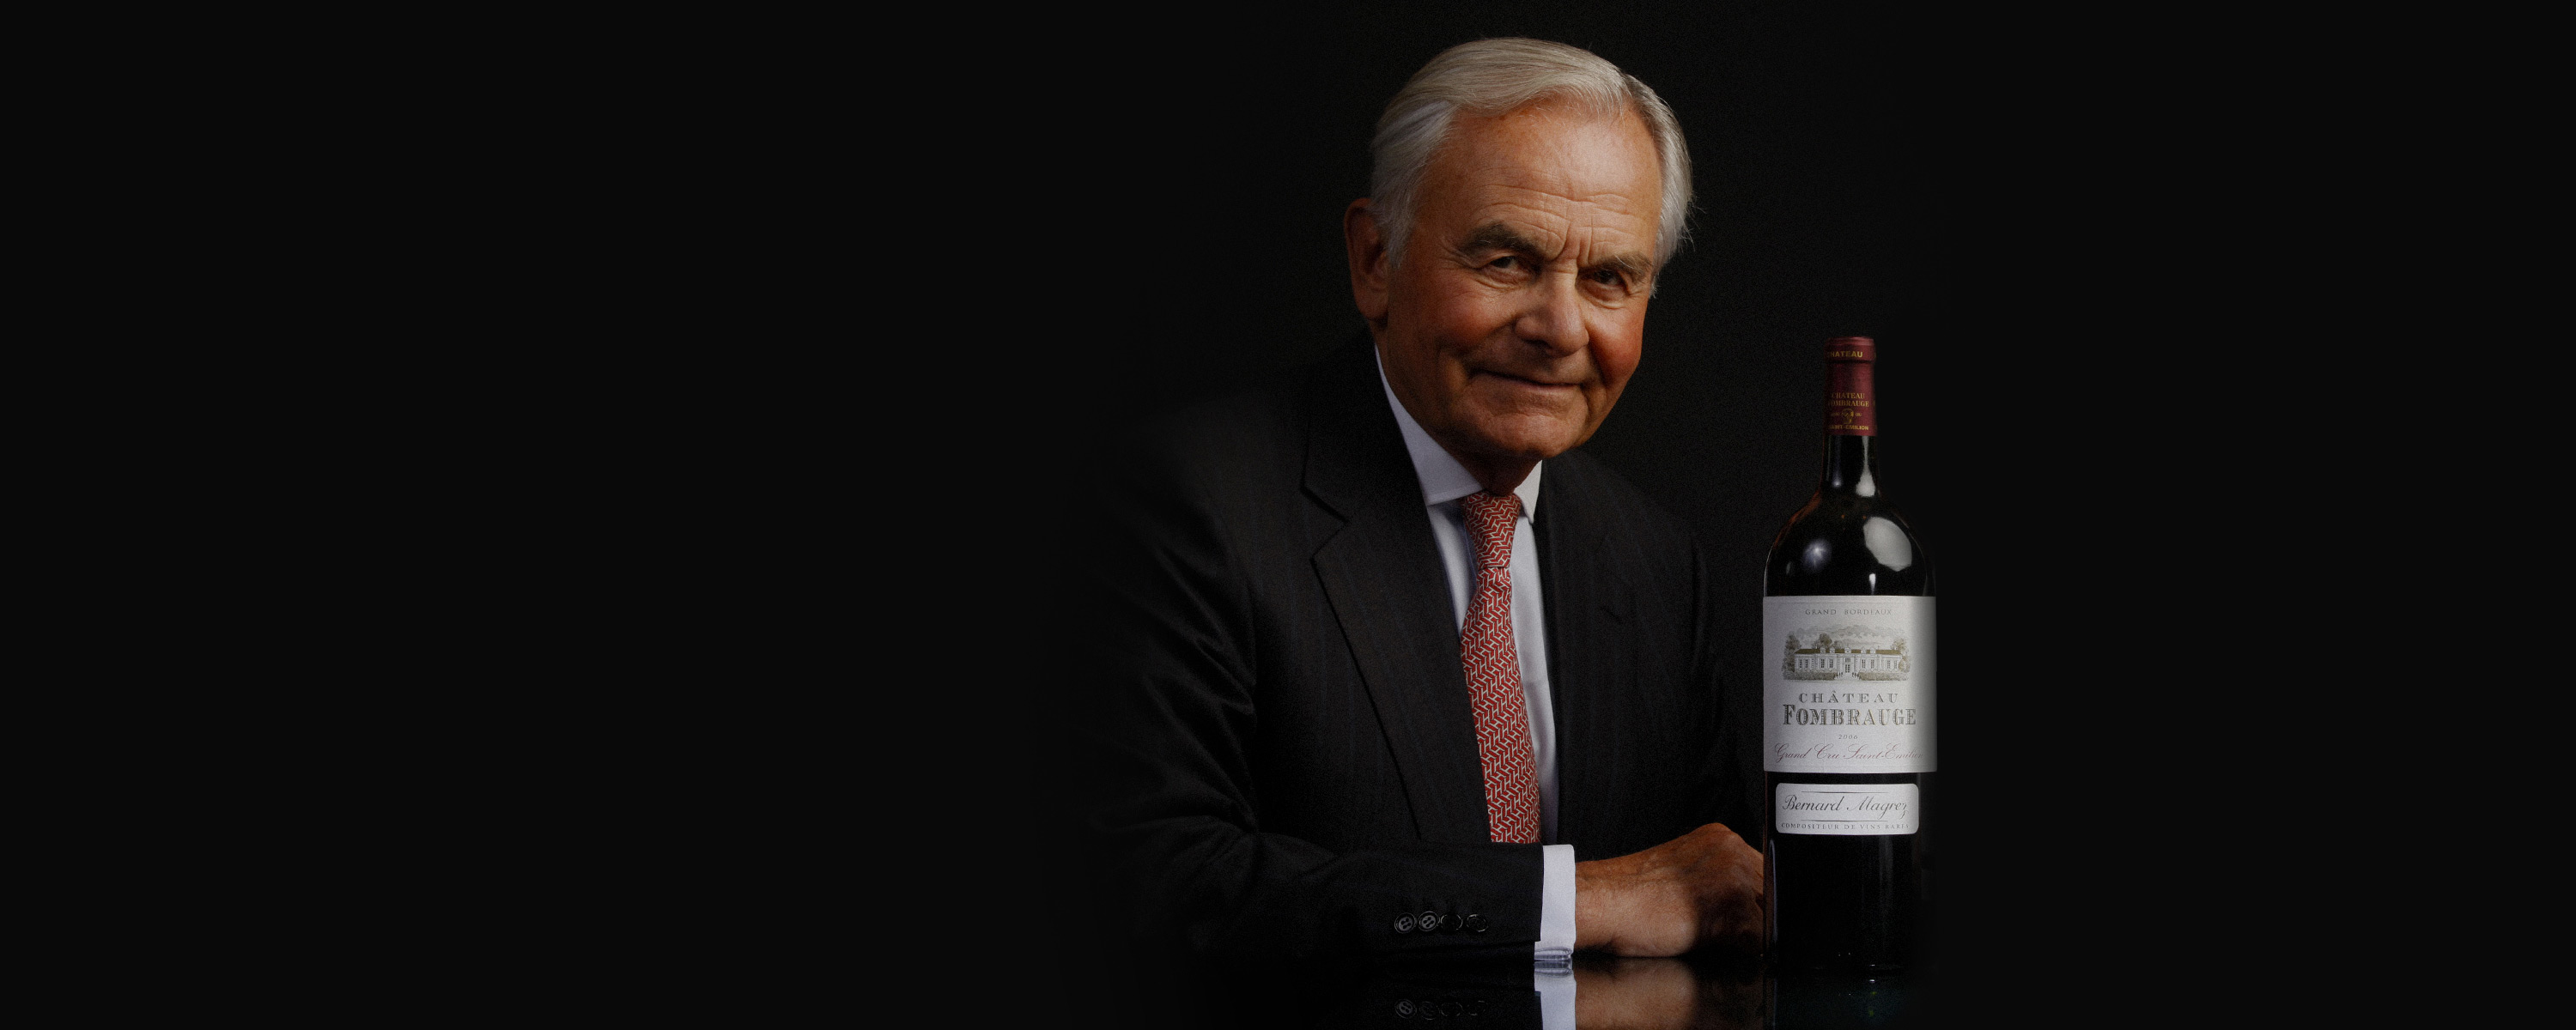 Portrait bernard magrez luxury wine experience © All rights reserved